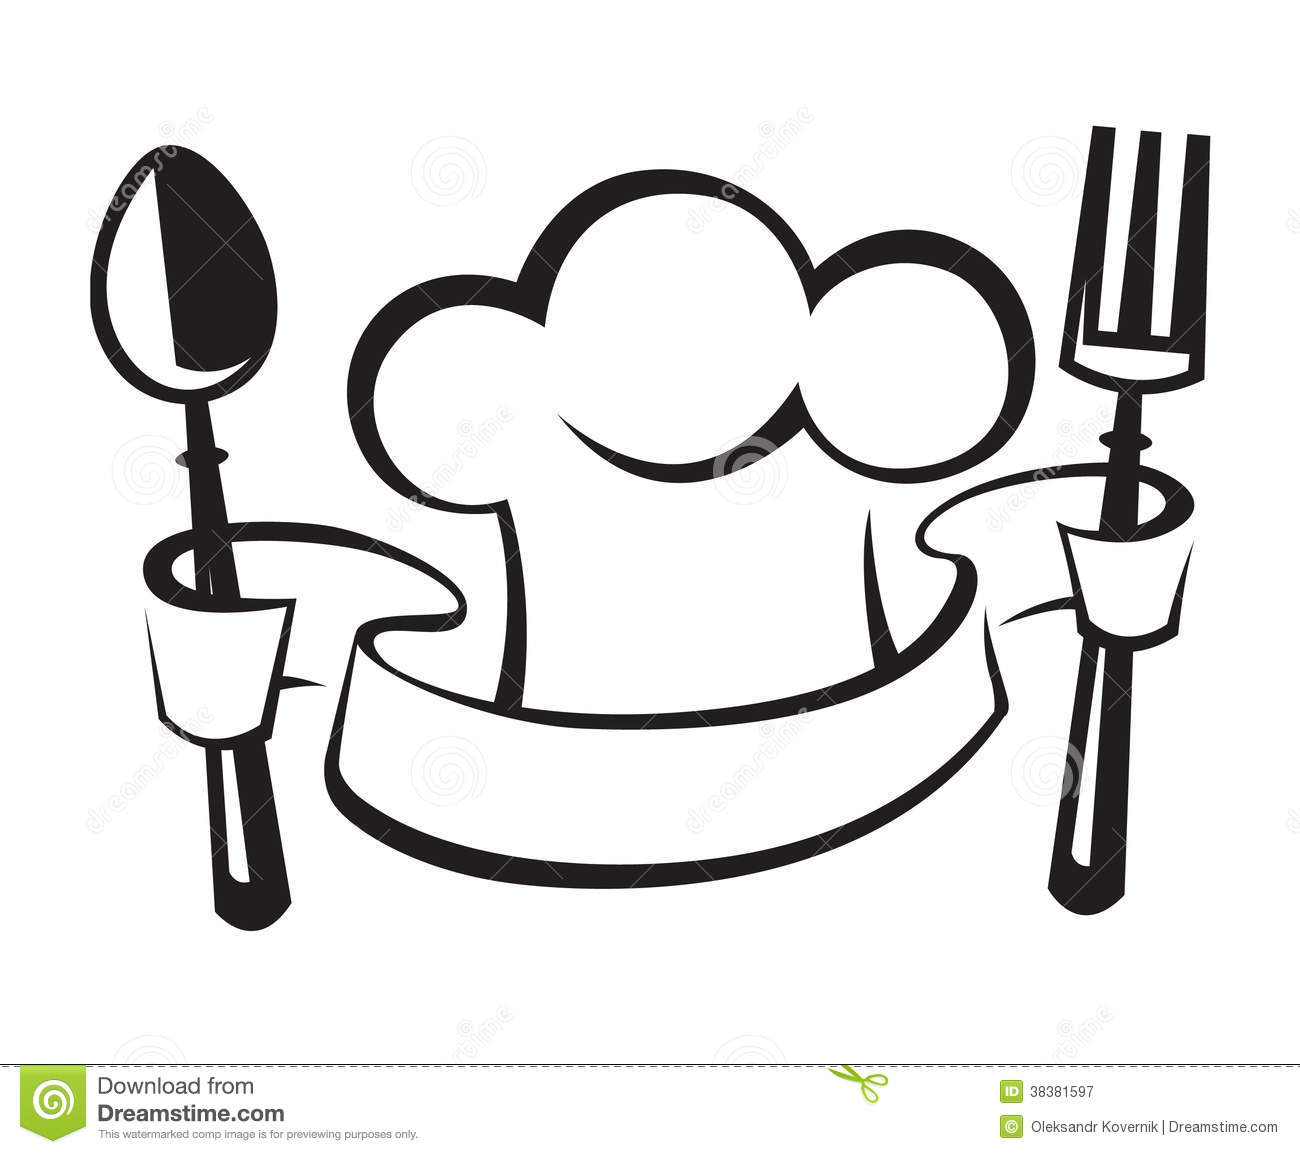 Taste This furthermore Logo Designs also Roof Wall Section Details as well Late Knife Spoon And Fork Vector 6787128 also Restaurant Suppression Systems. on restaurant kitchen